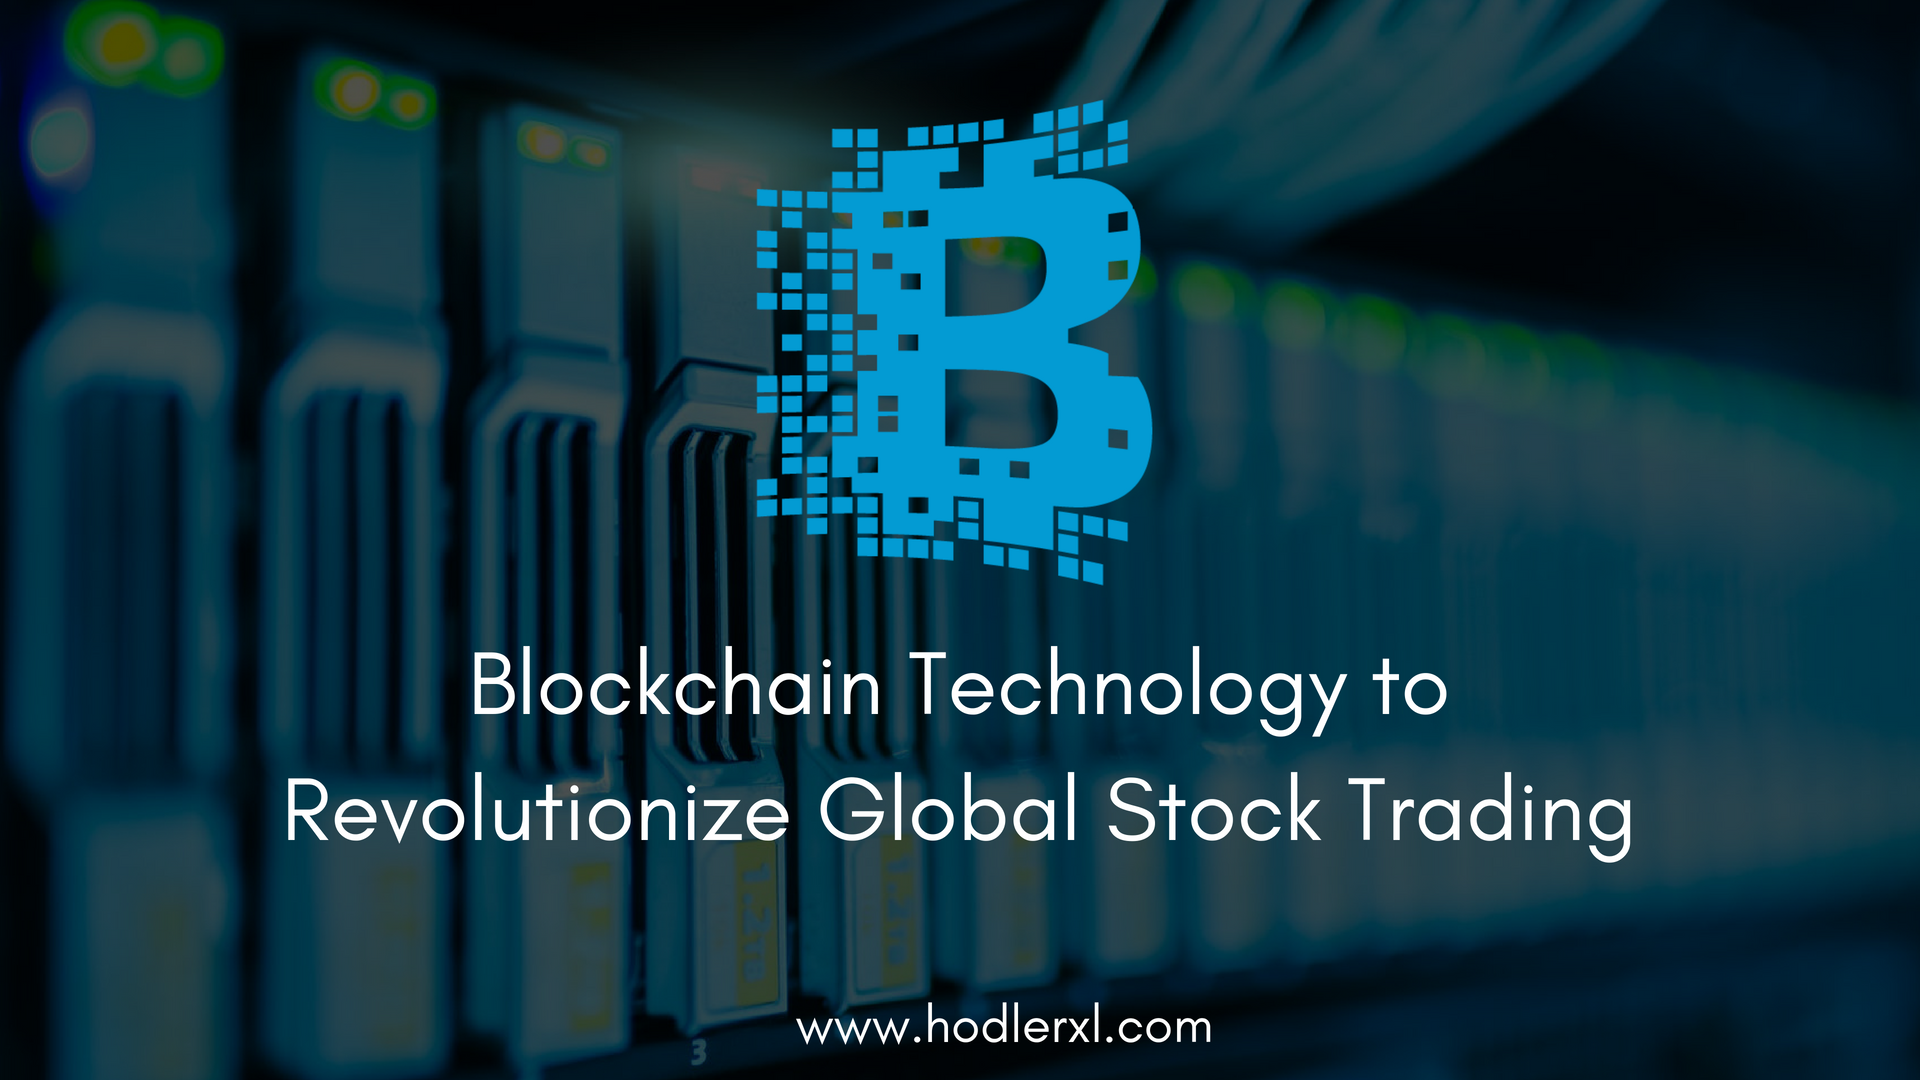 Blockchain Technology to Revolutionize Global Stock Trading